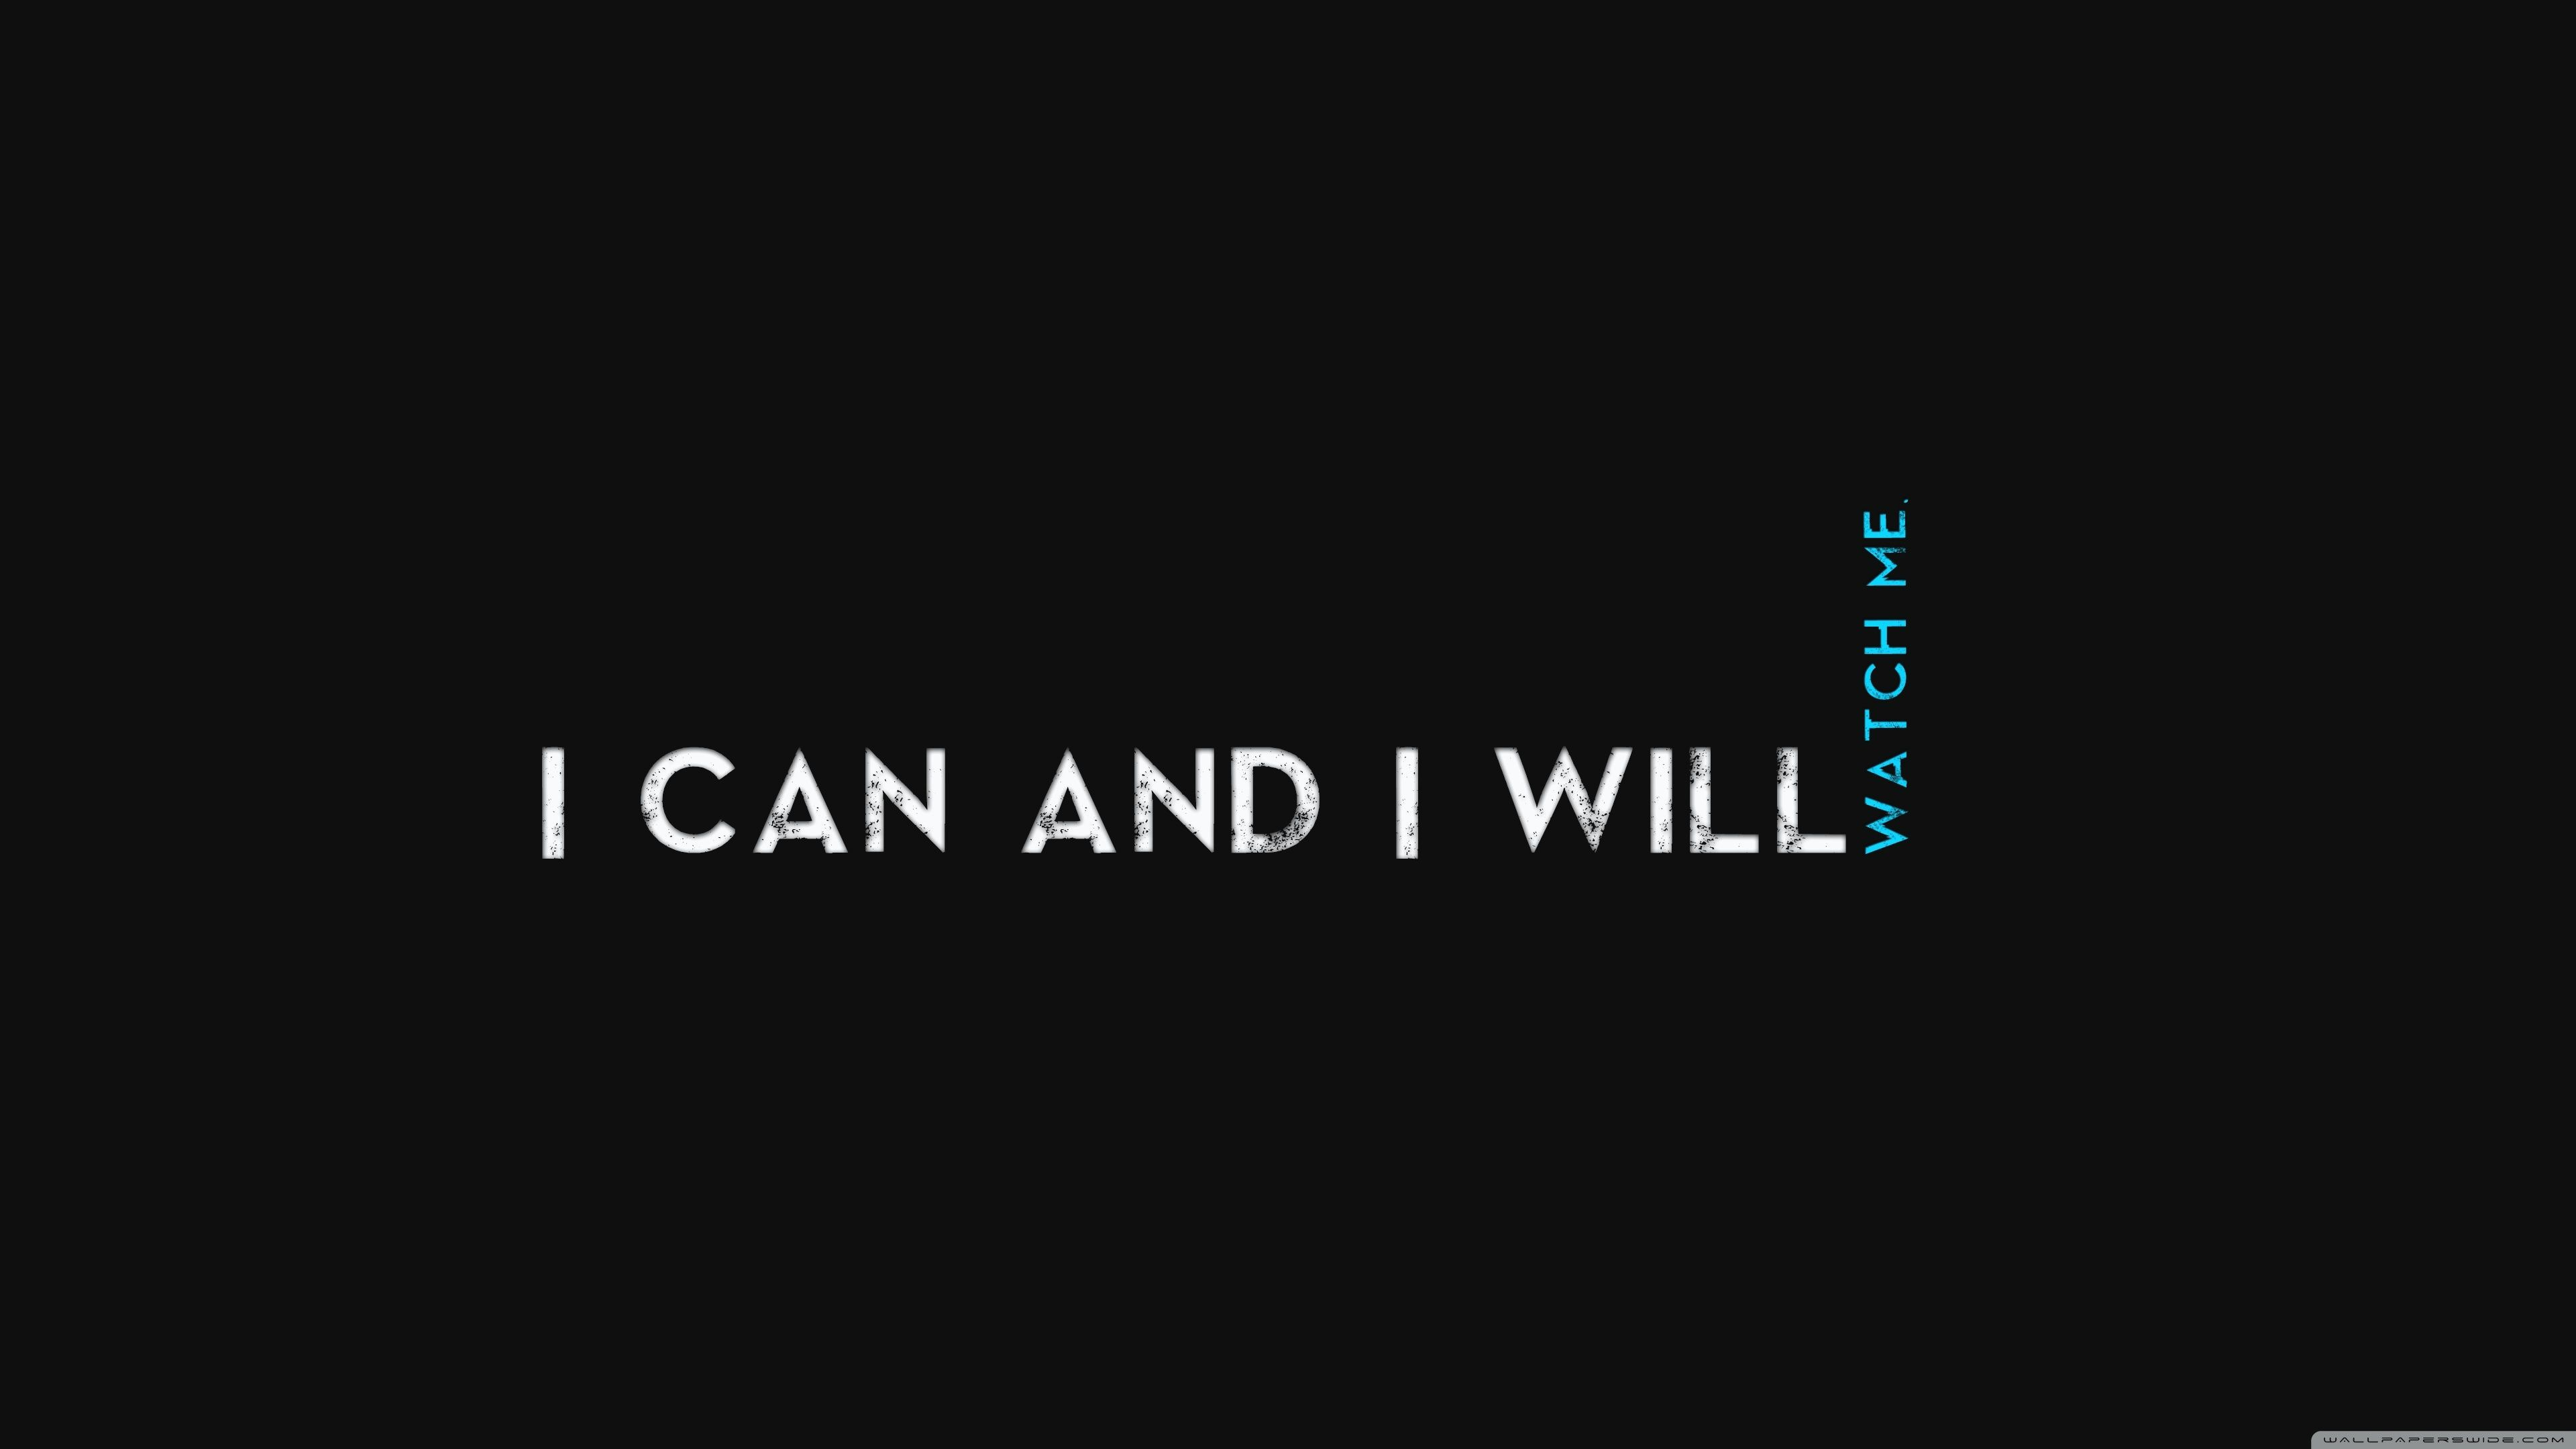 Wallpaperswide A Quotes Hd Wallpapers For 4k Ultra Hd